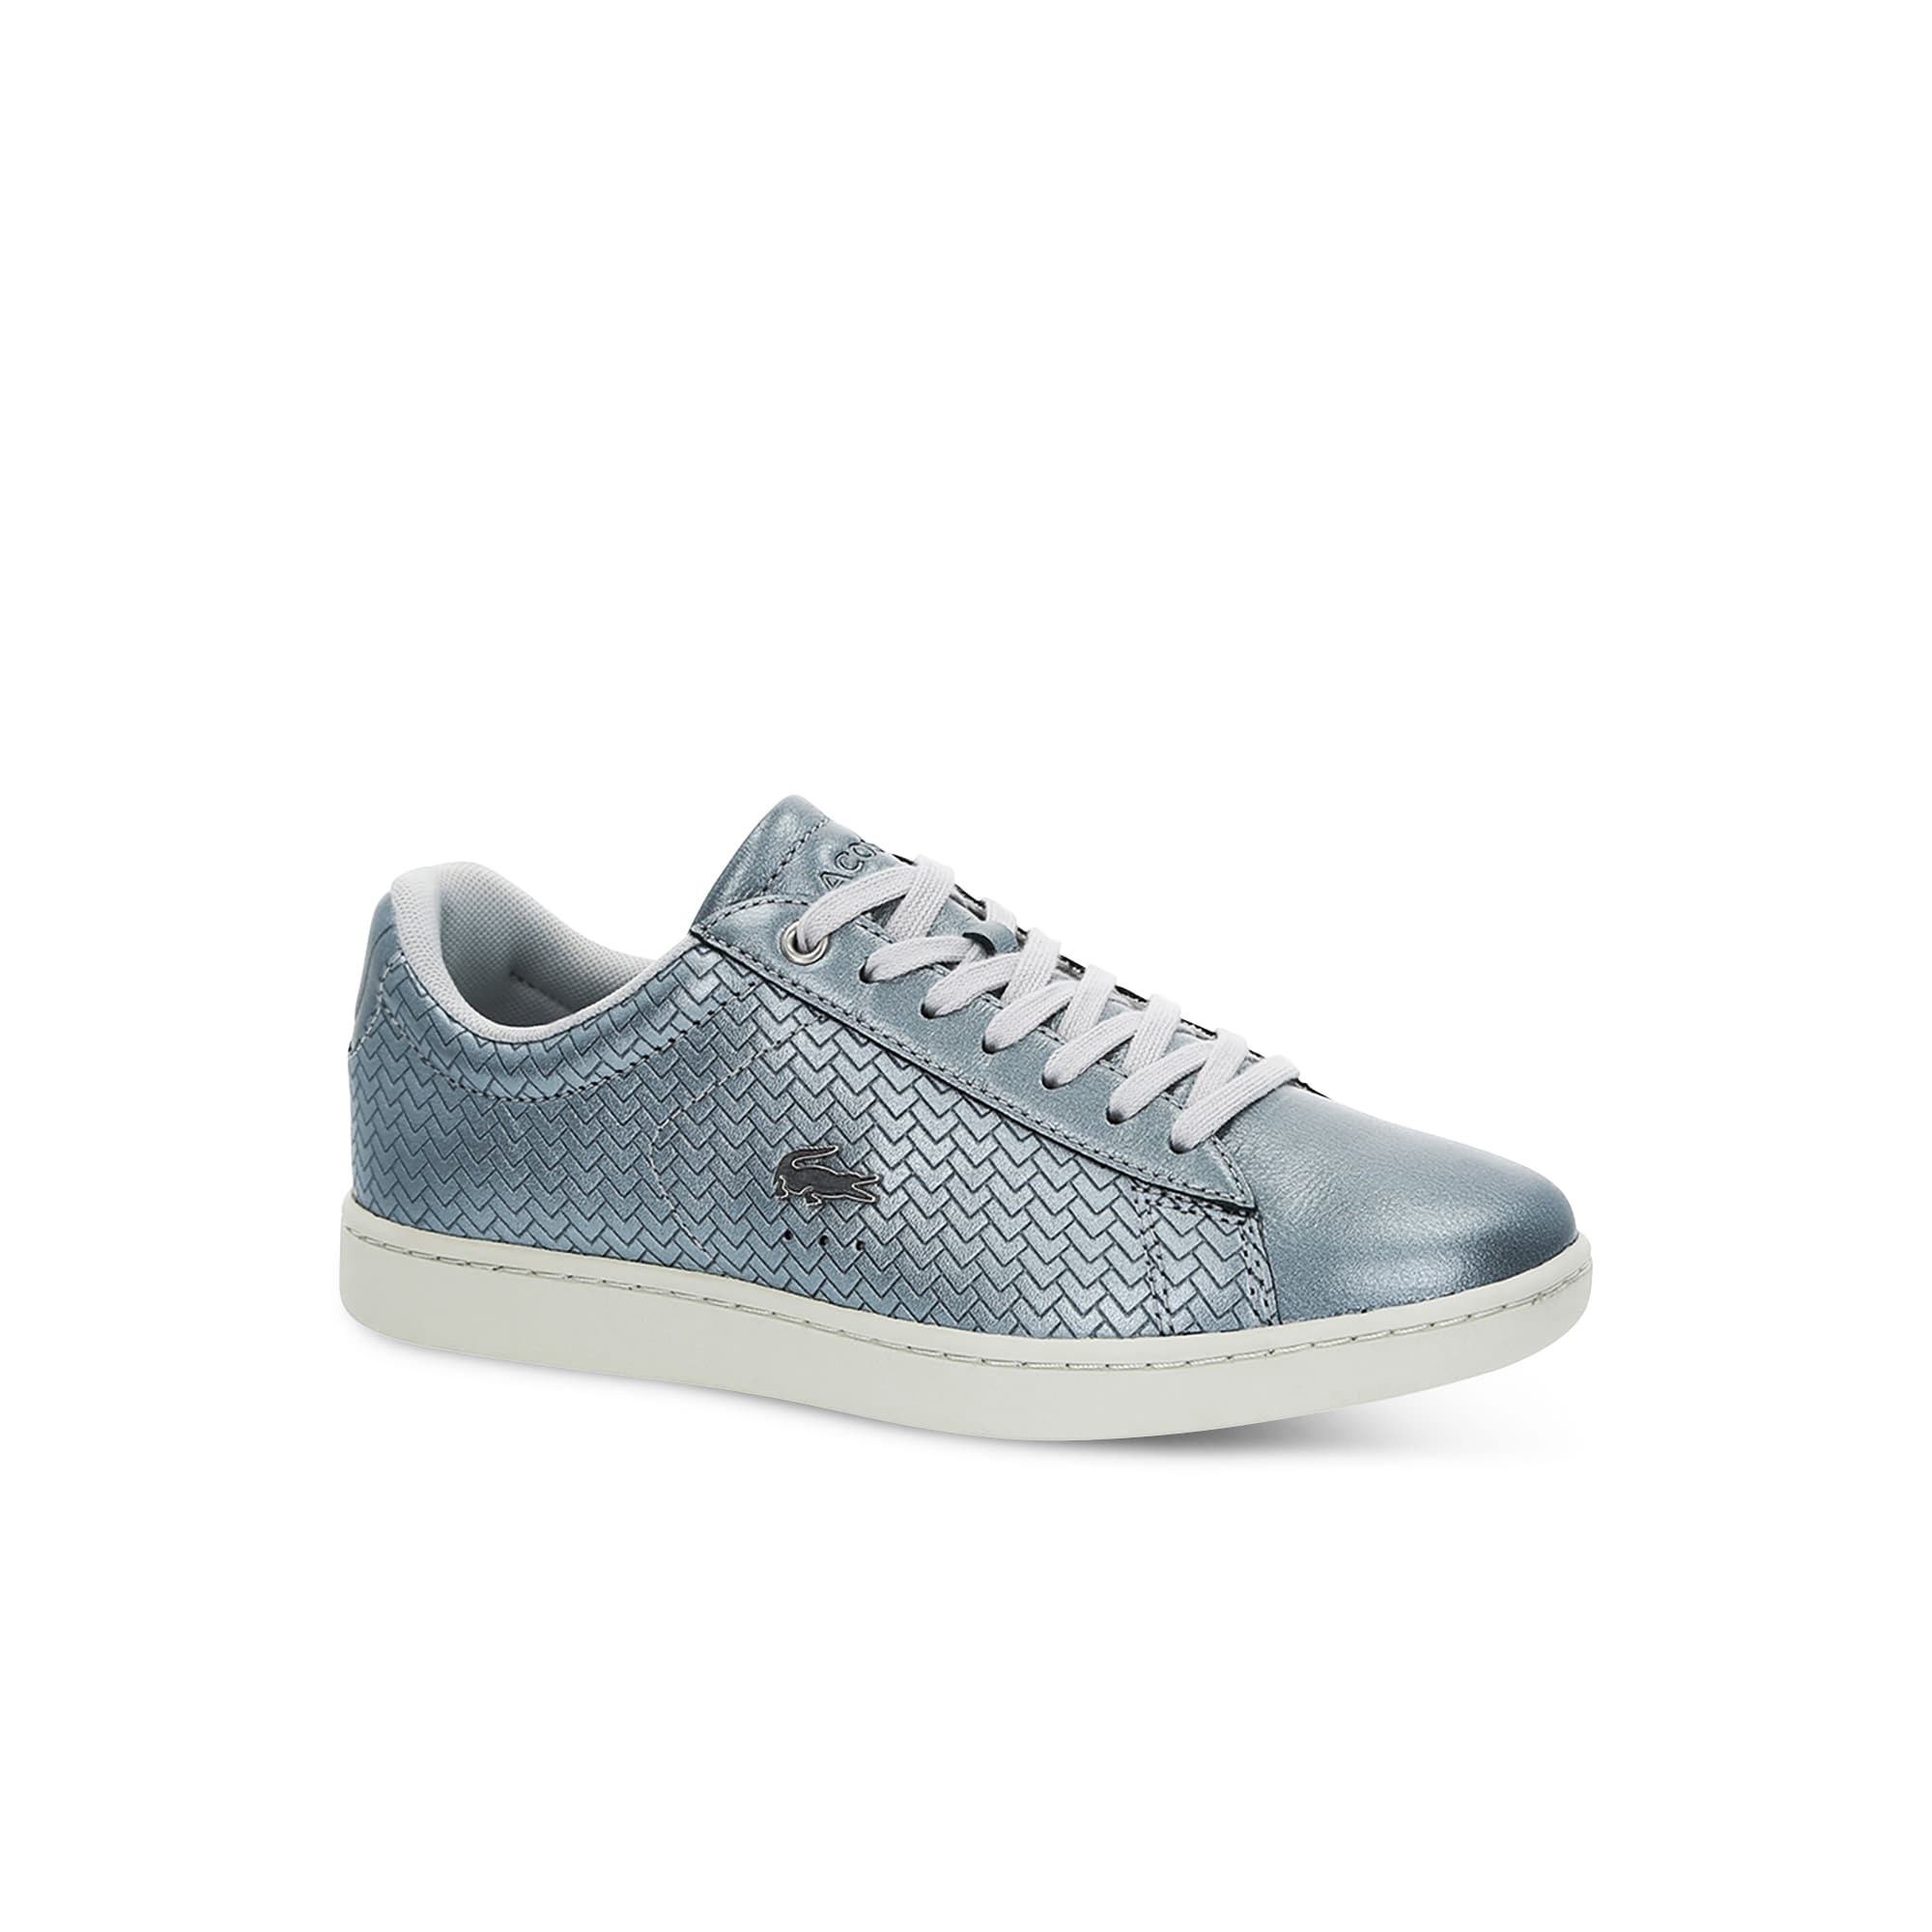 Women's Carnaby Evo Metallic Embossed Leather Trainers